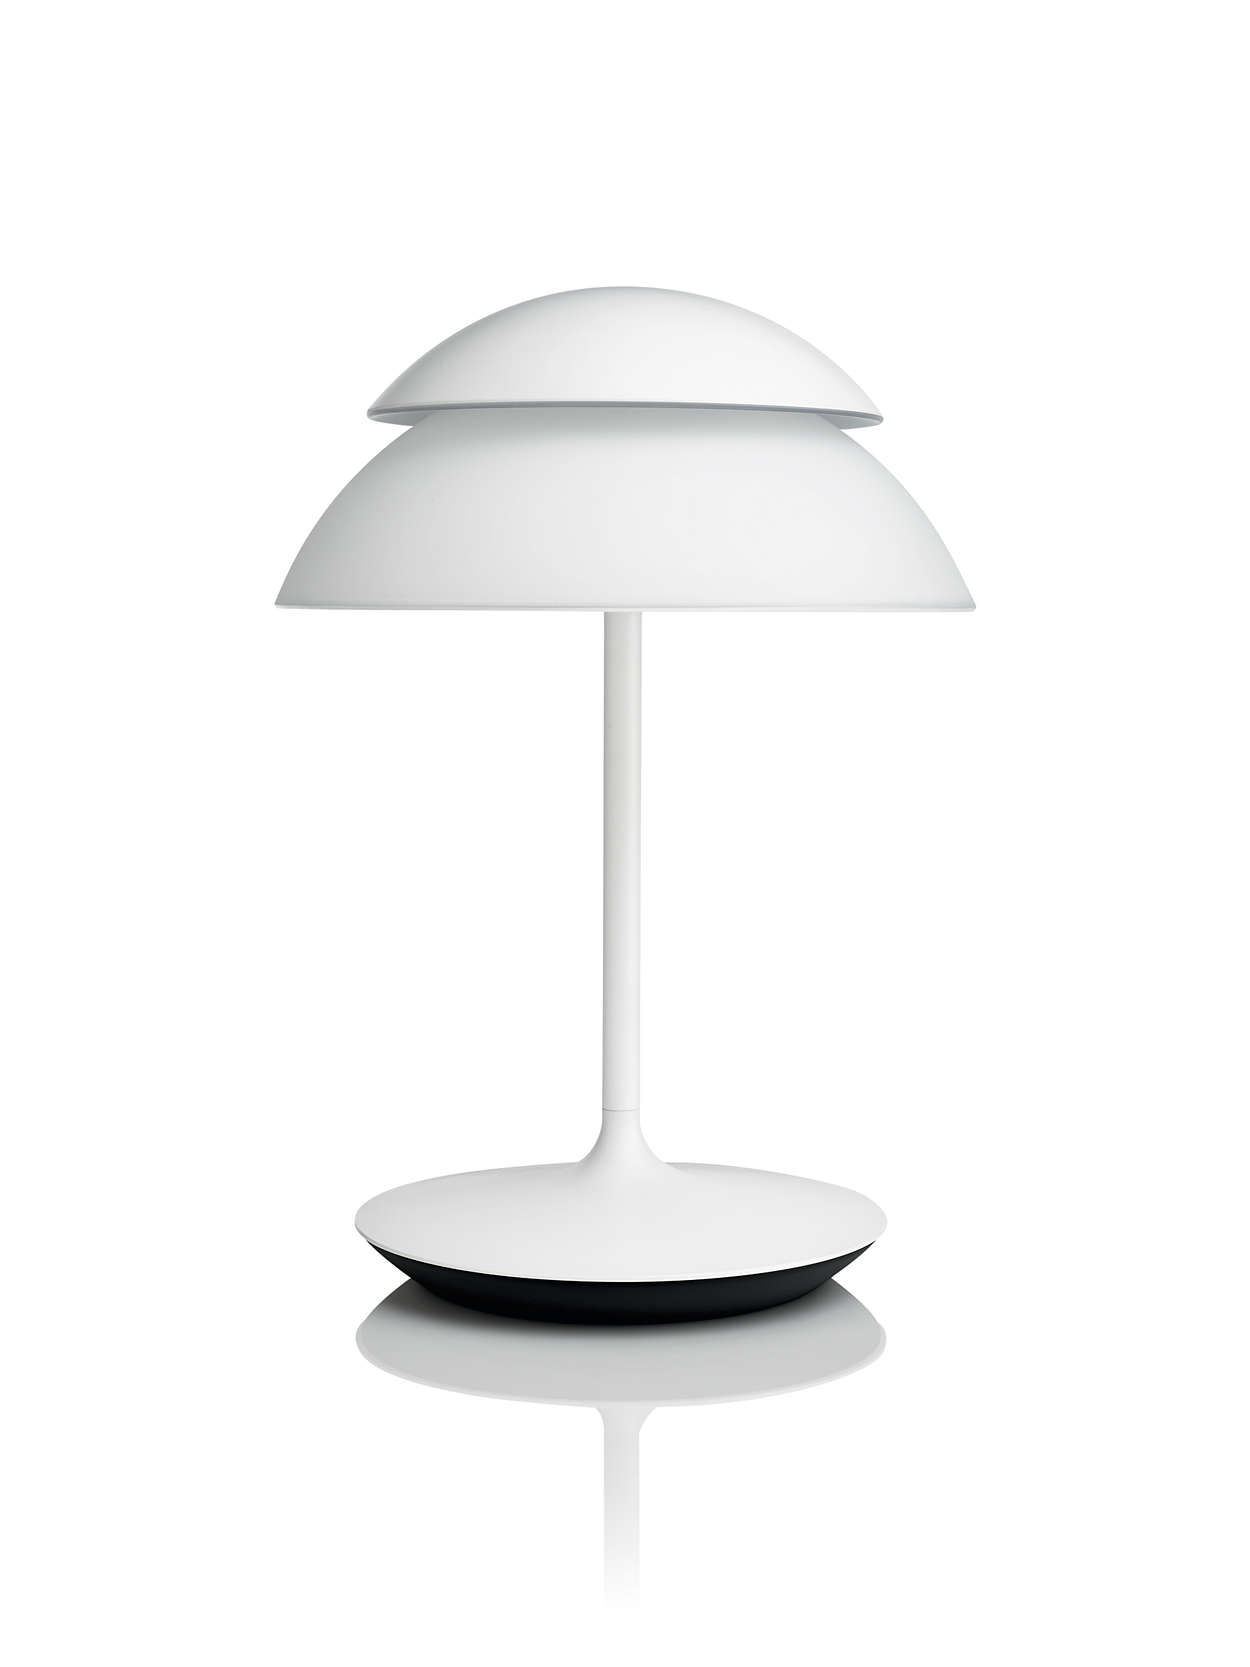 hue white and color ambiance lampe de table beyond 7120231ph philips. Black Bedroom Furniture Sets. Home Design Ideas